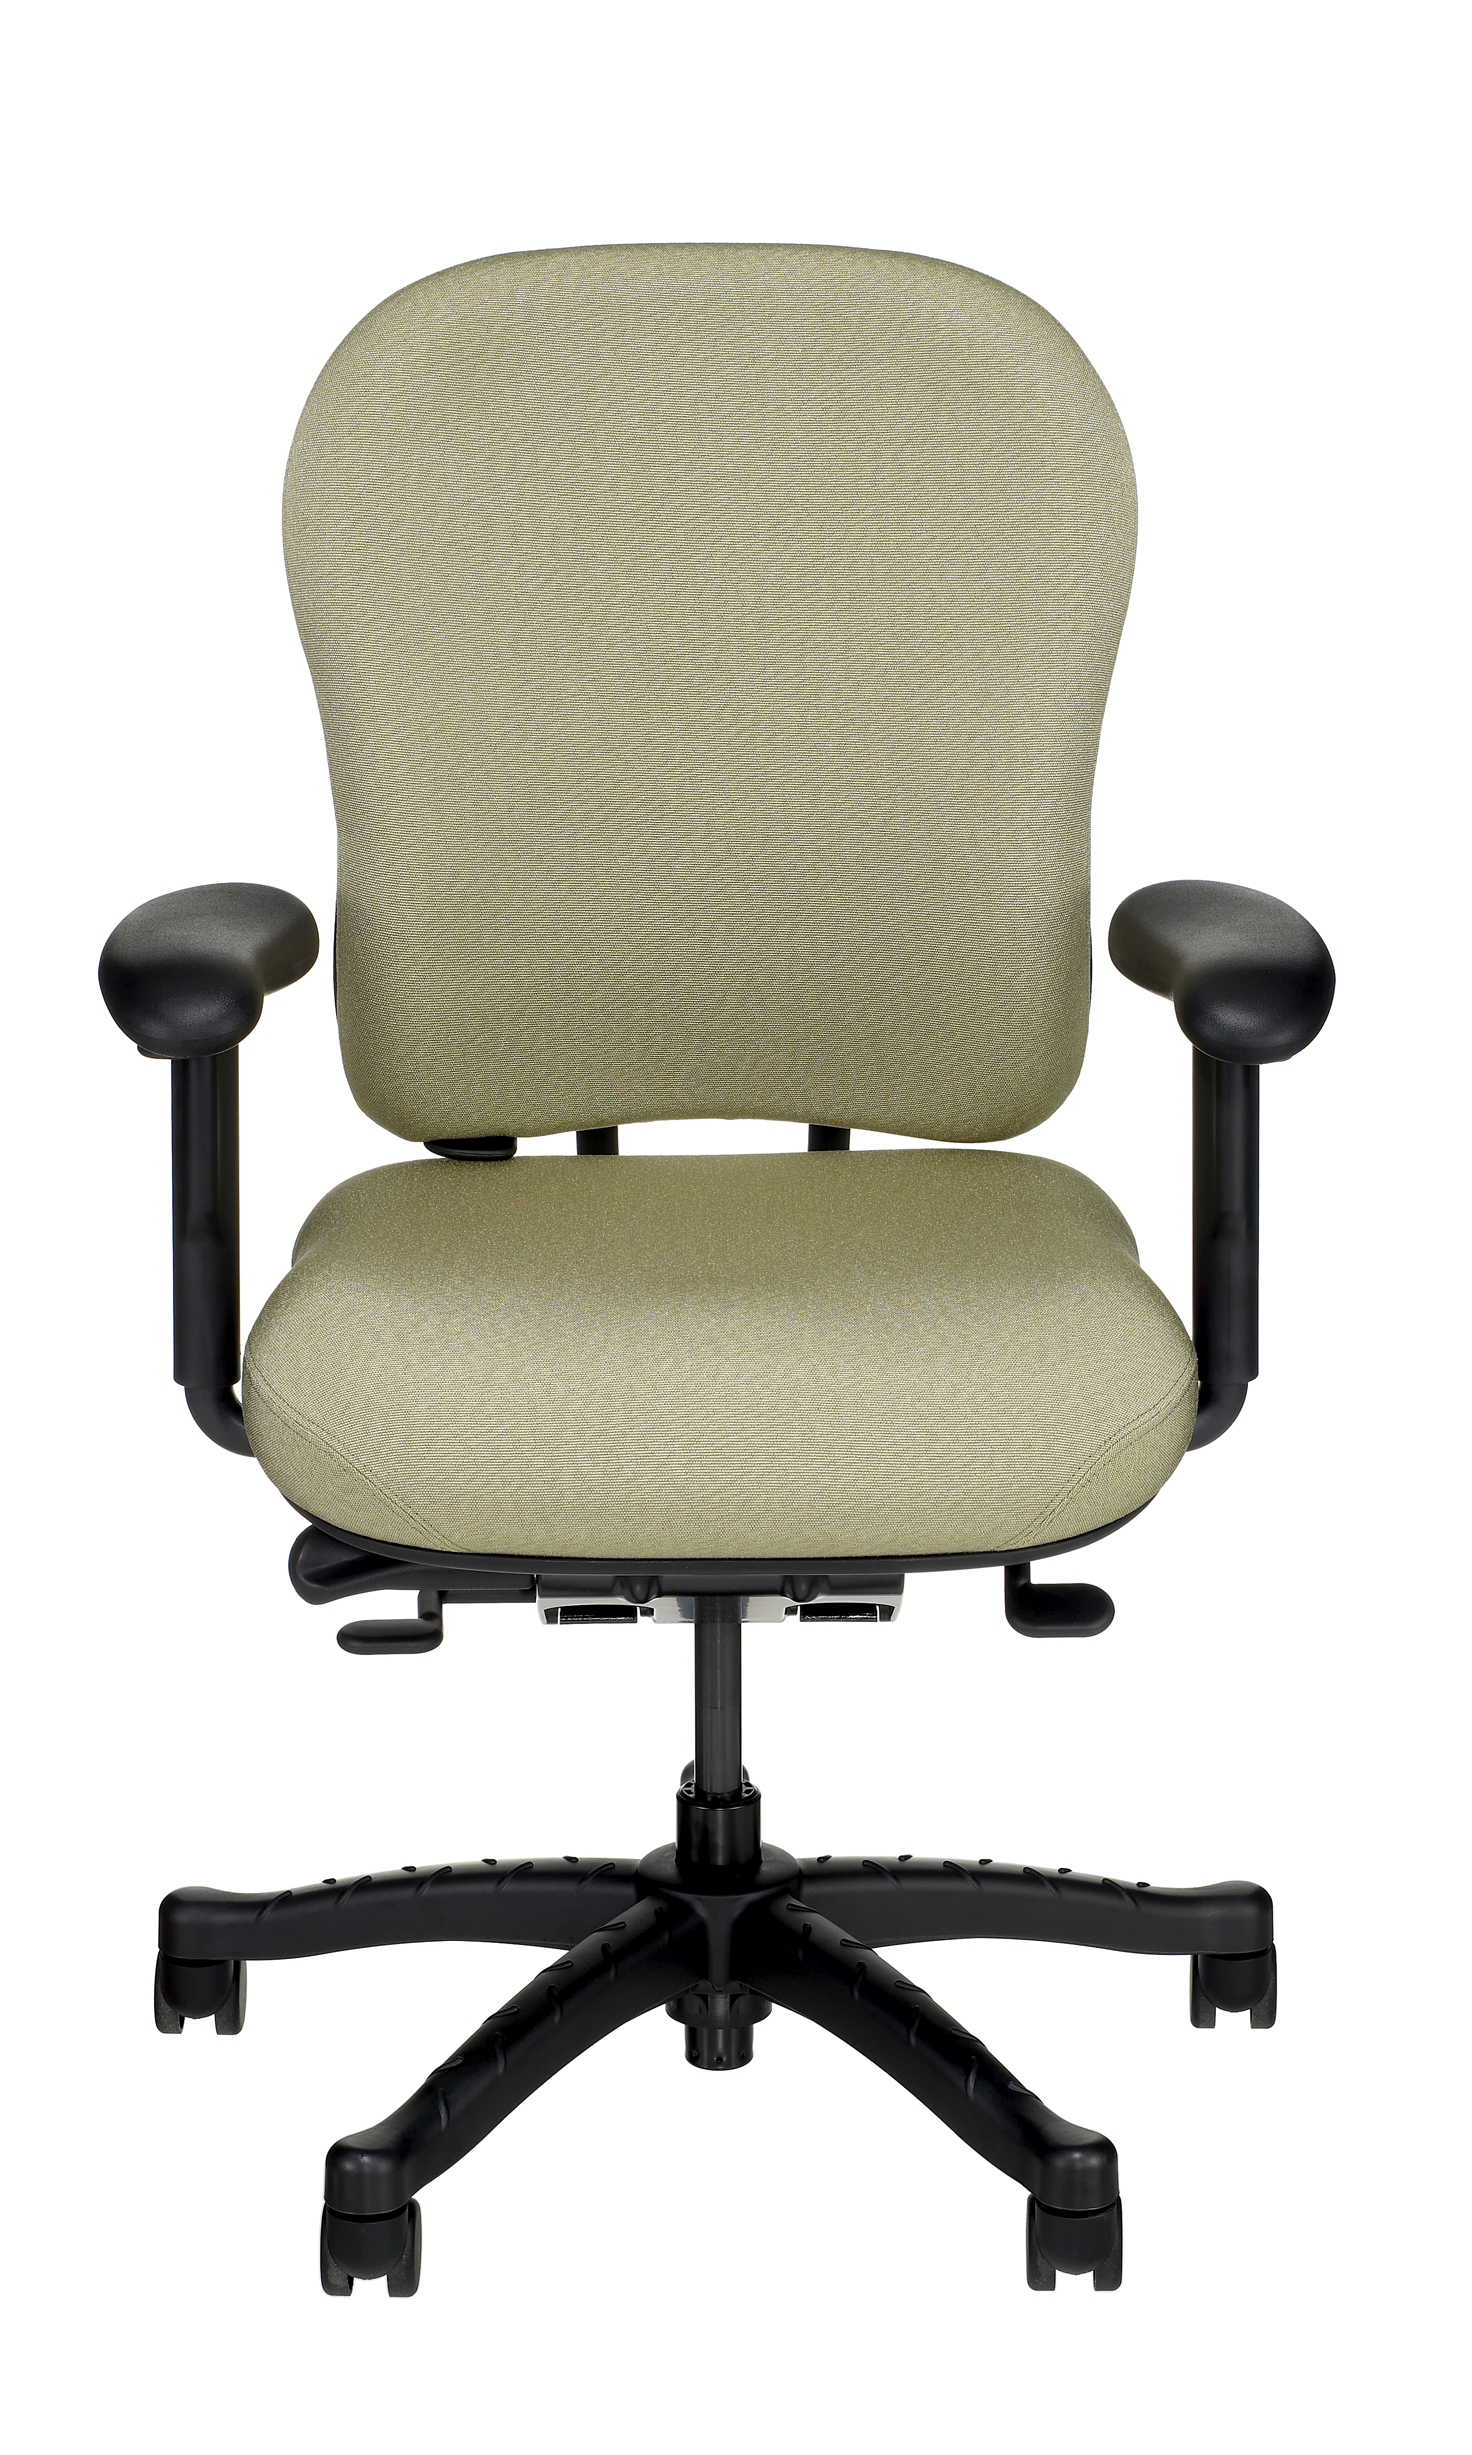 knoll rpm chair john deere task